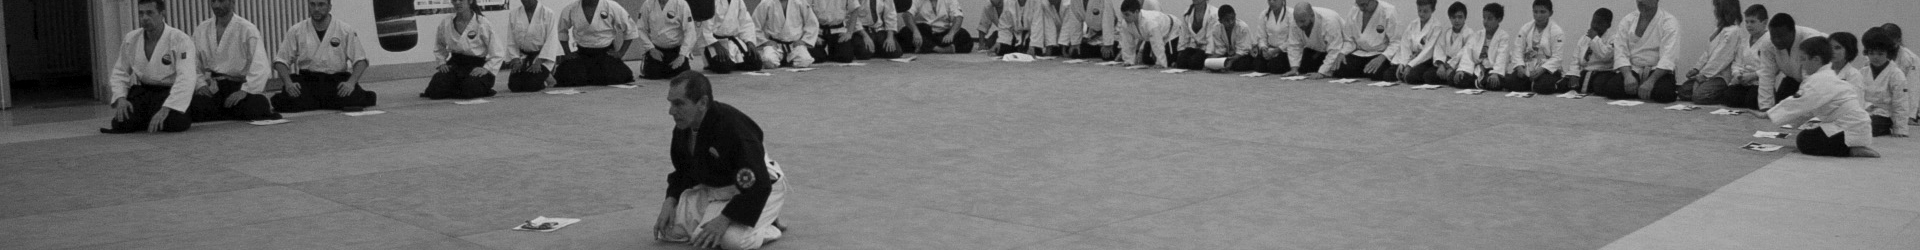 Session de formation à l'enseignement